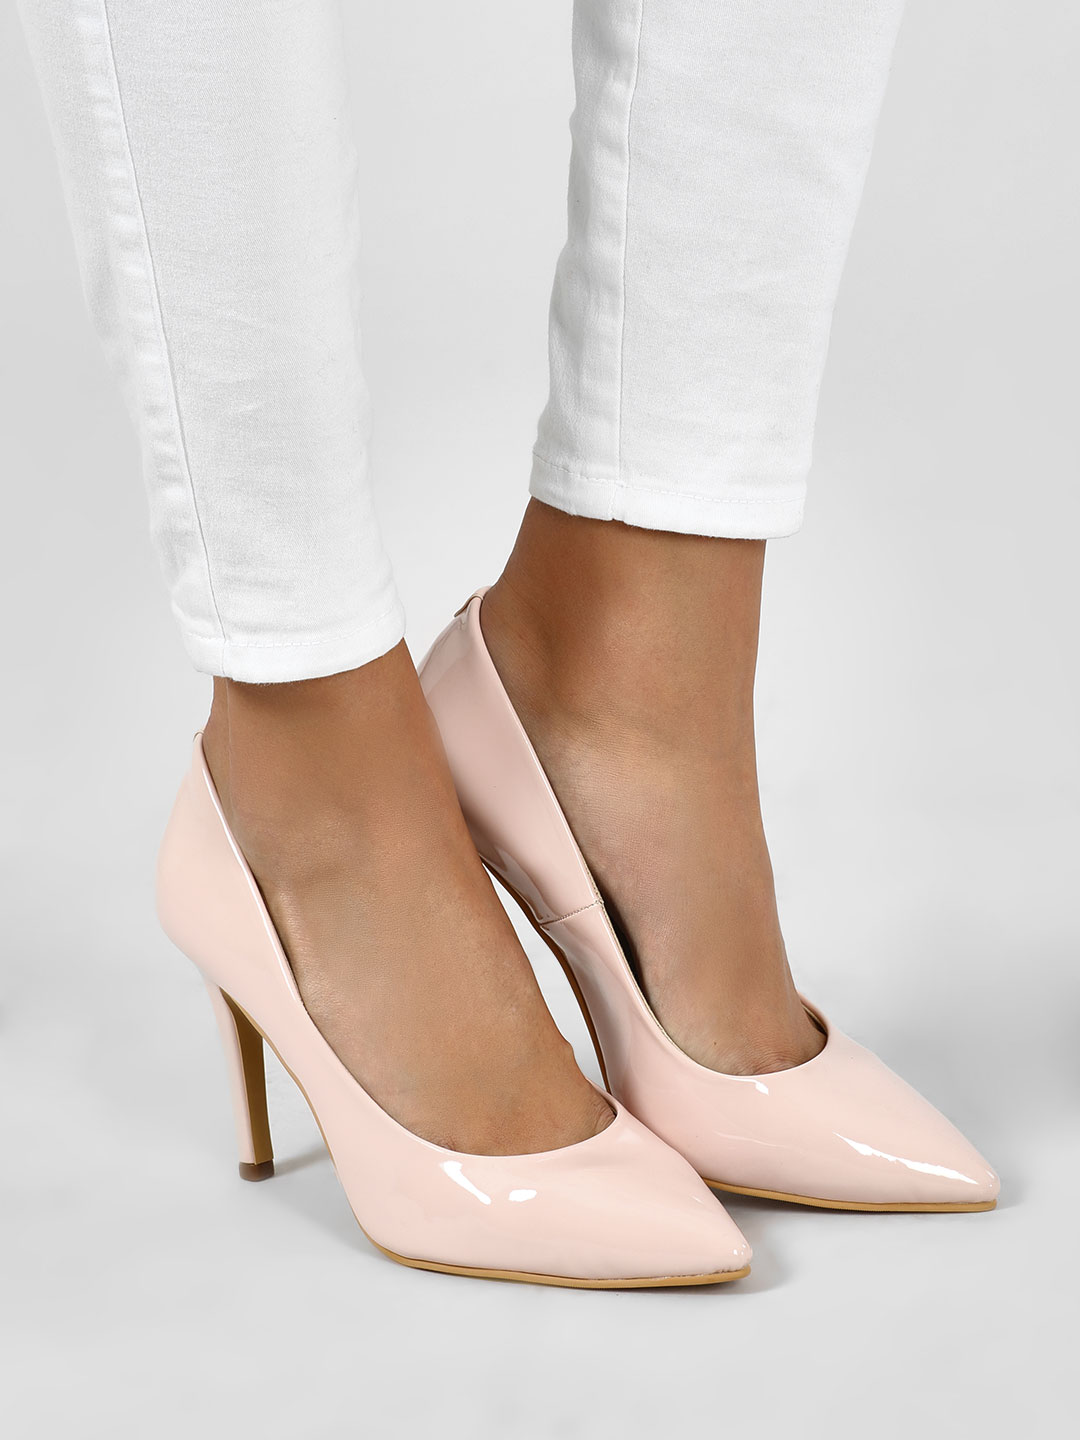 KOOVS Pink Patent Finish Stiletto Pumps 1